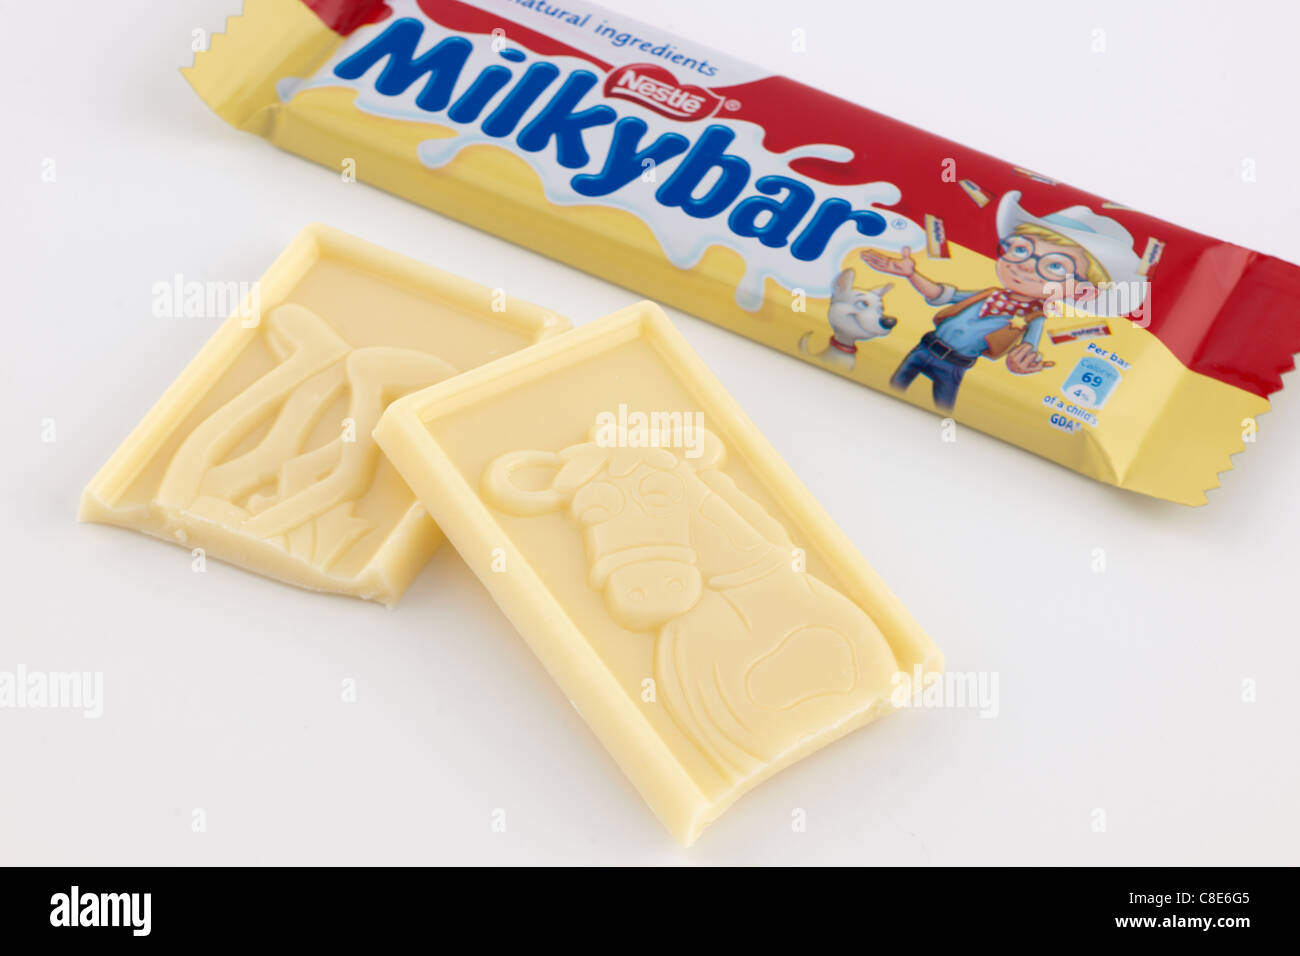 Big Milky Bar Chocolate